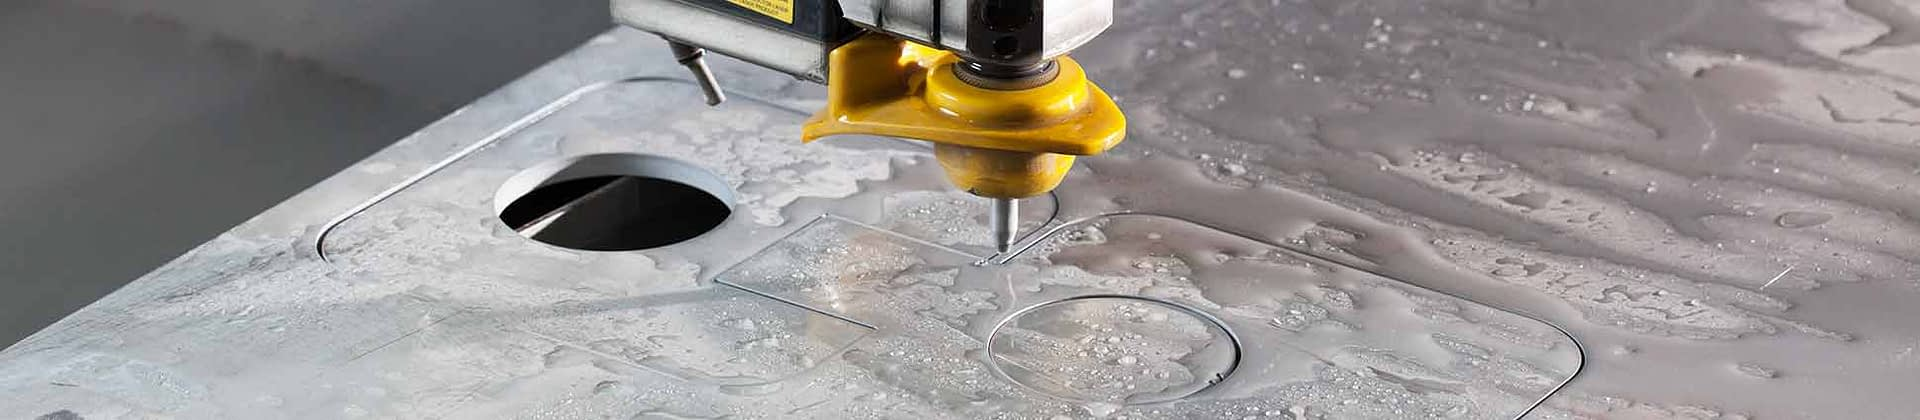 Water jet cutting of metal